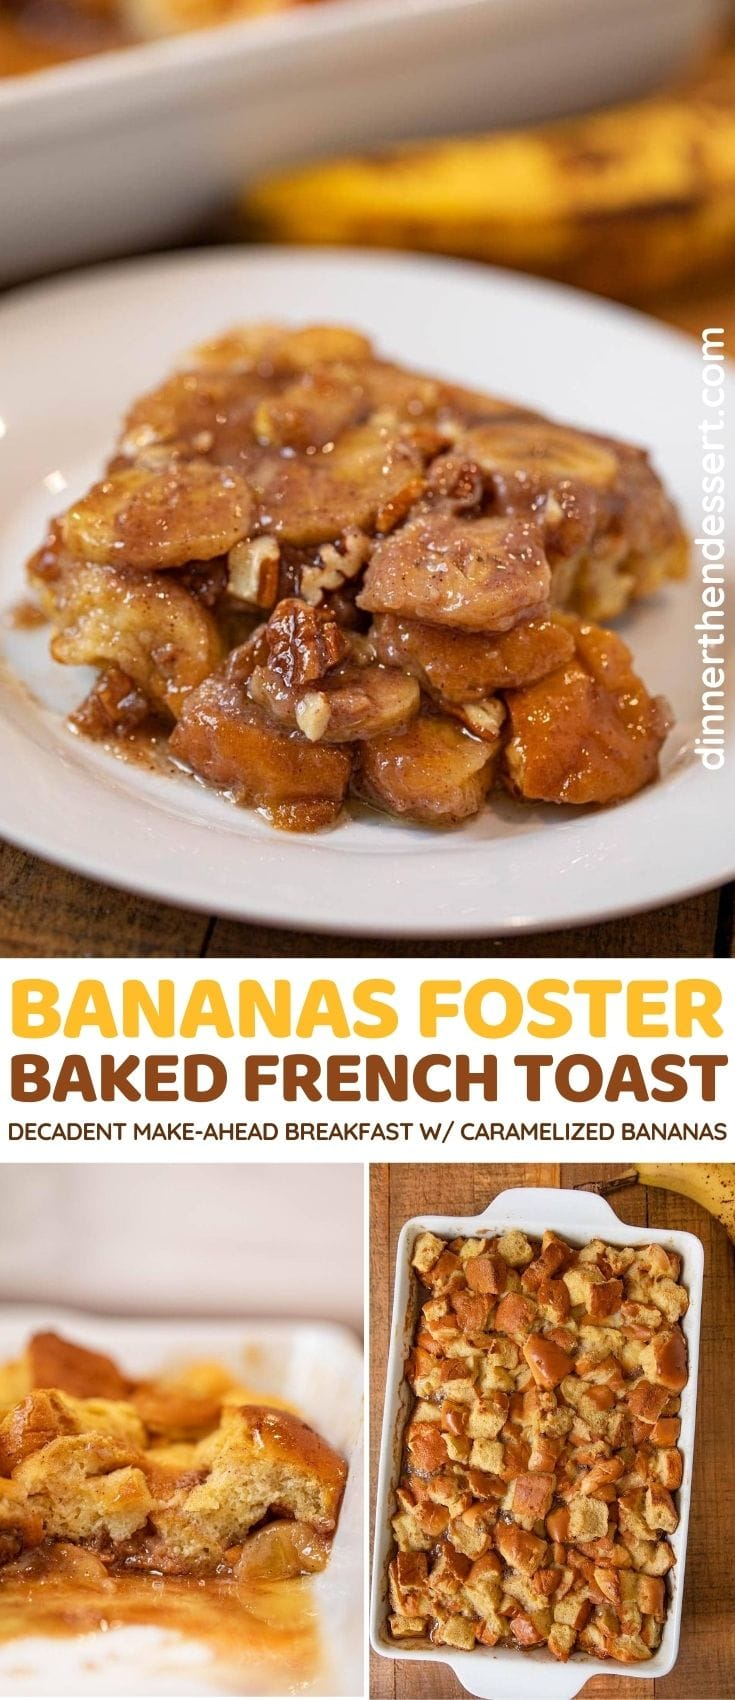 Bananas Foster Baked French Toast collage